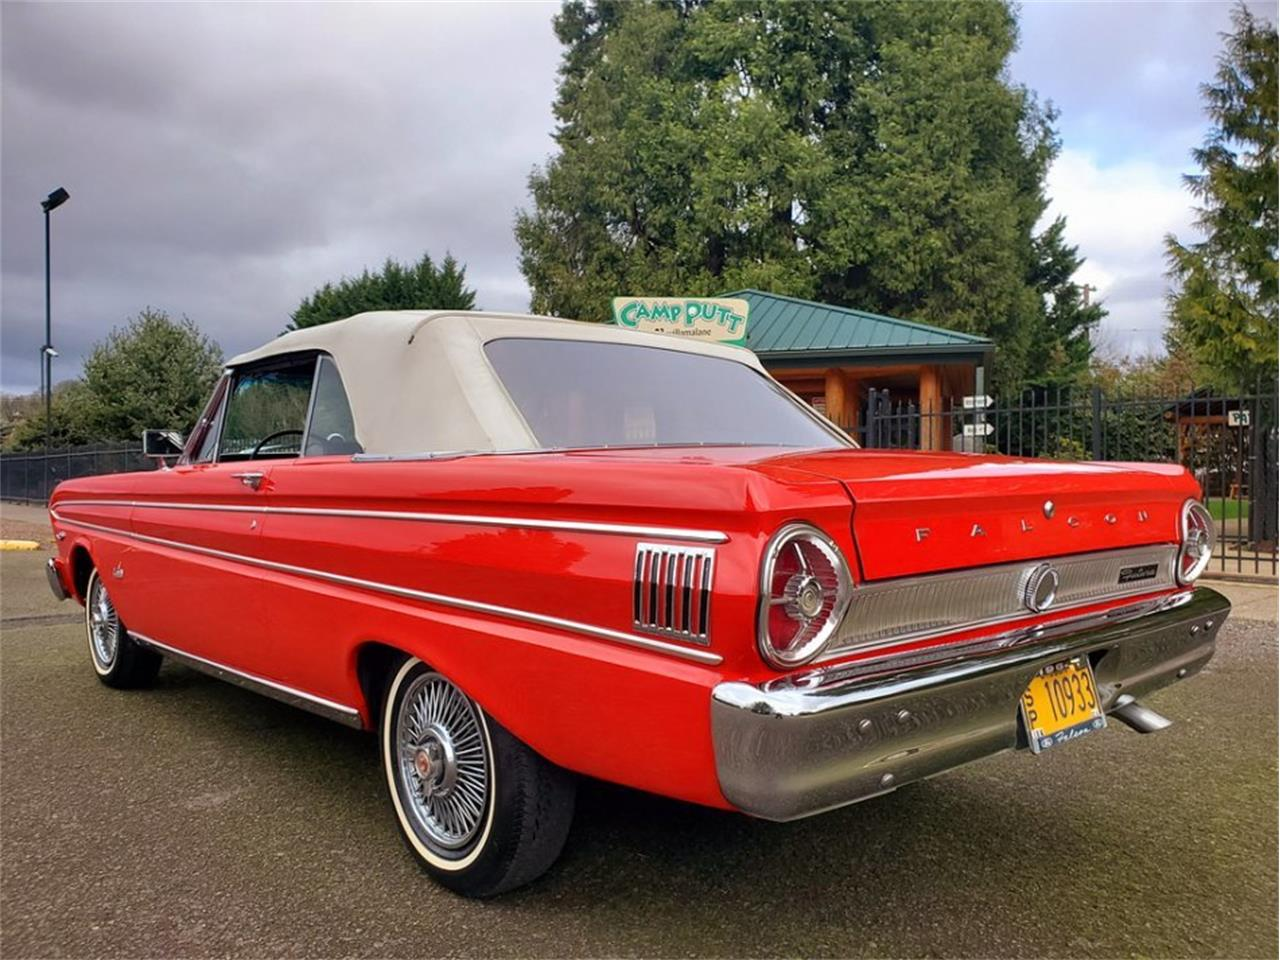 1964 Ford Falcon (CC-1321142) for sale in Eugene, Oregon